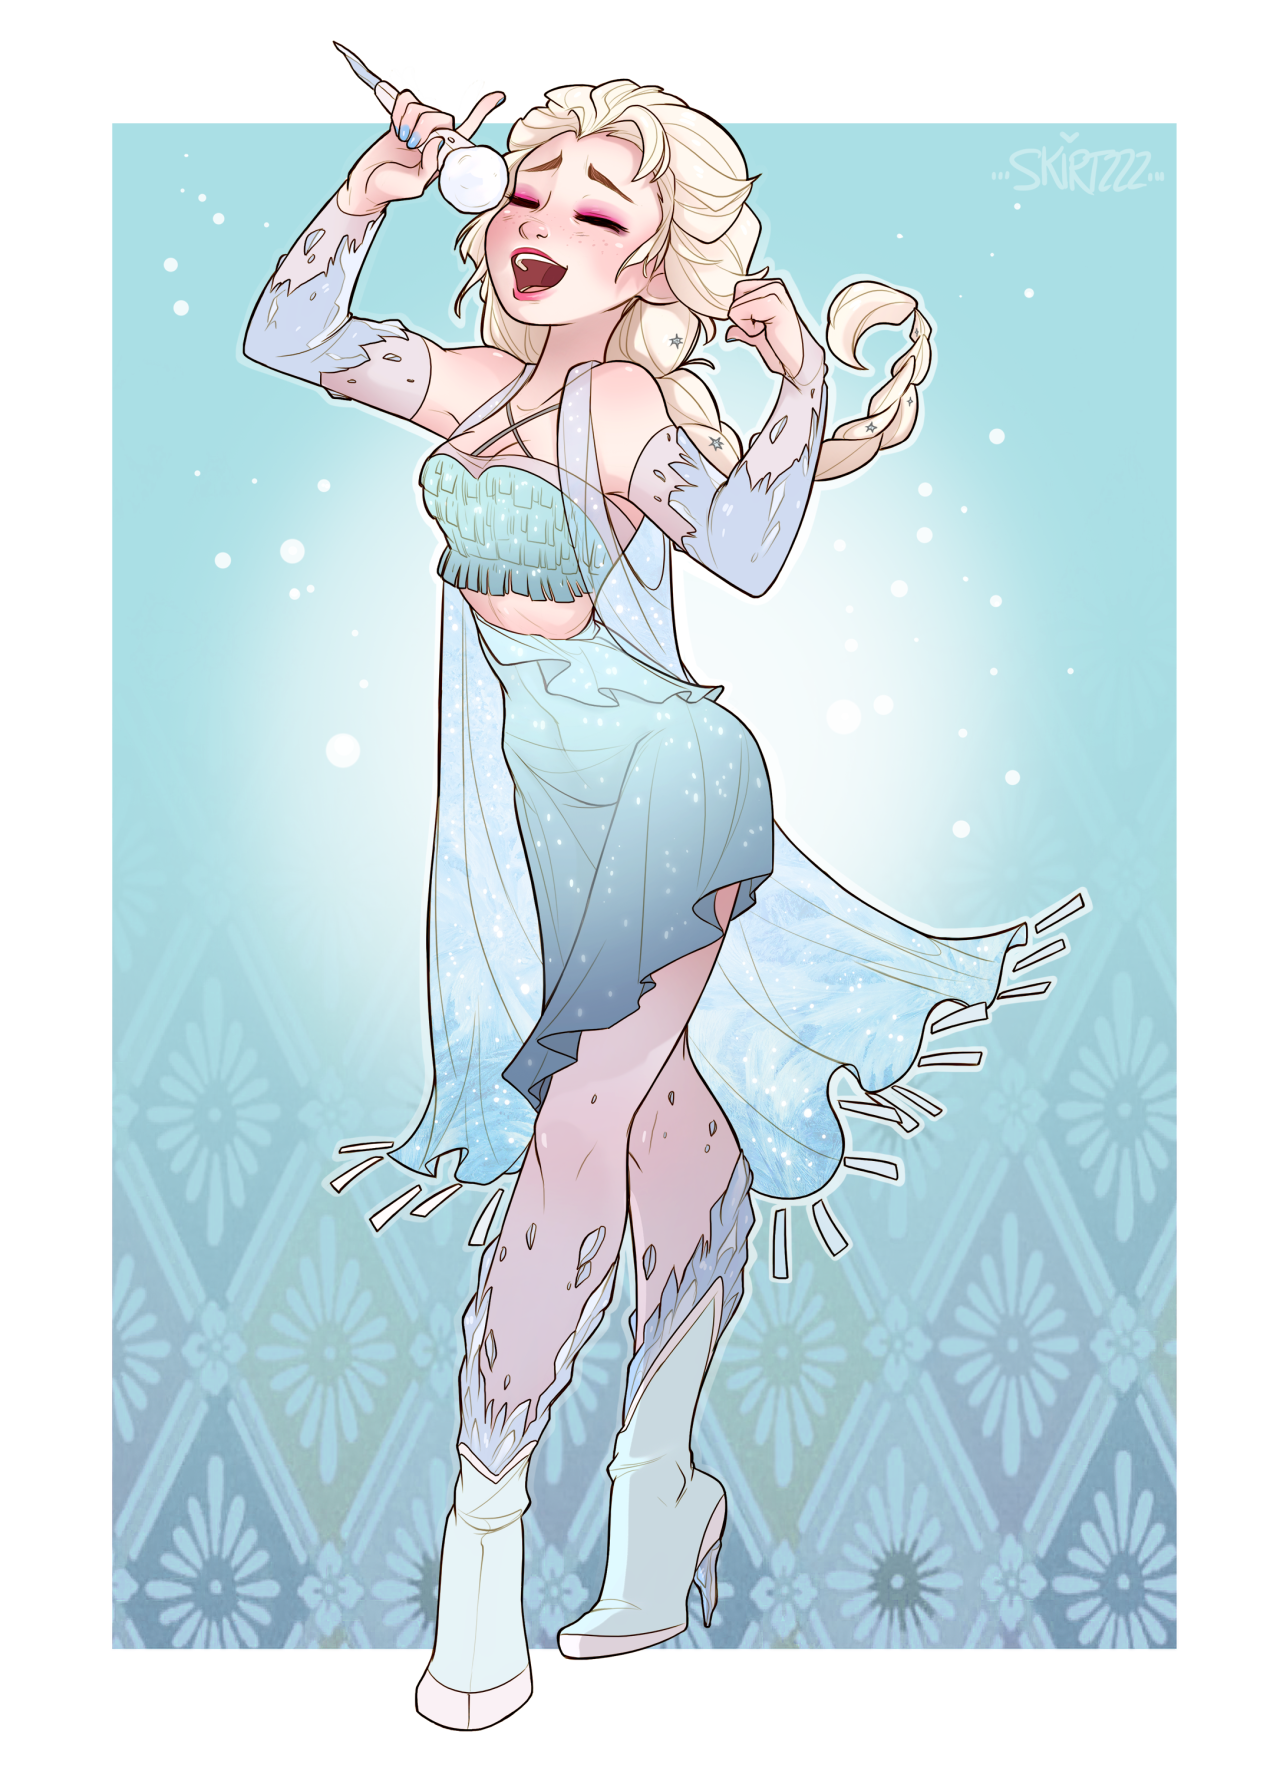 I Hear Your Voice Calling Out To Me You Ll Never Let It Go What Can I Freeze For You Elsa Songstress Disney Frozen Elsa Disney Fan Art Disney Art